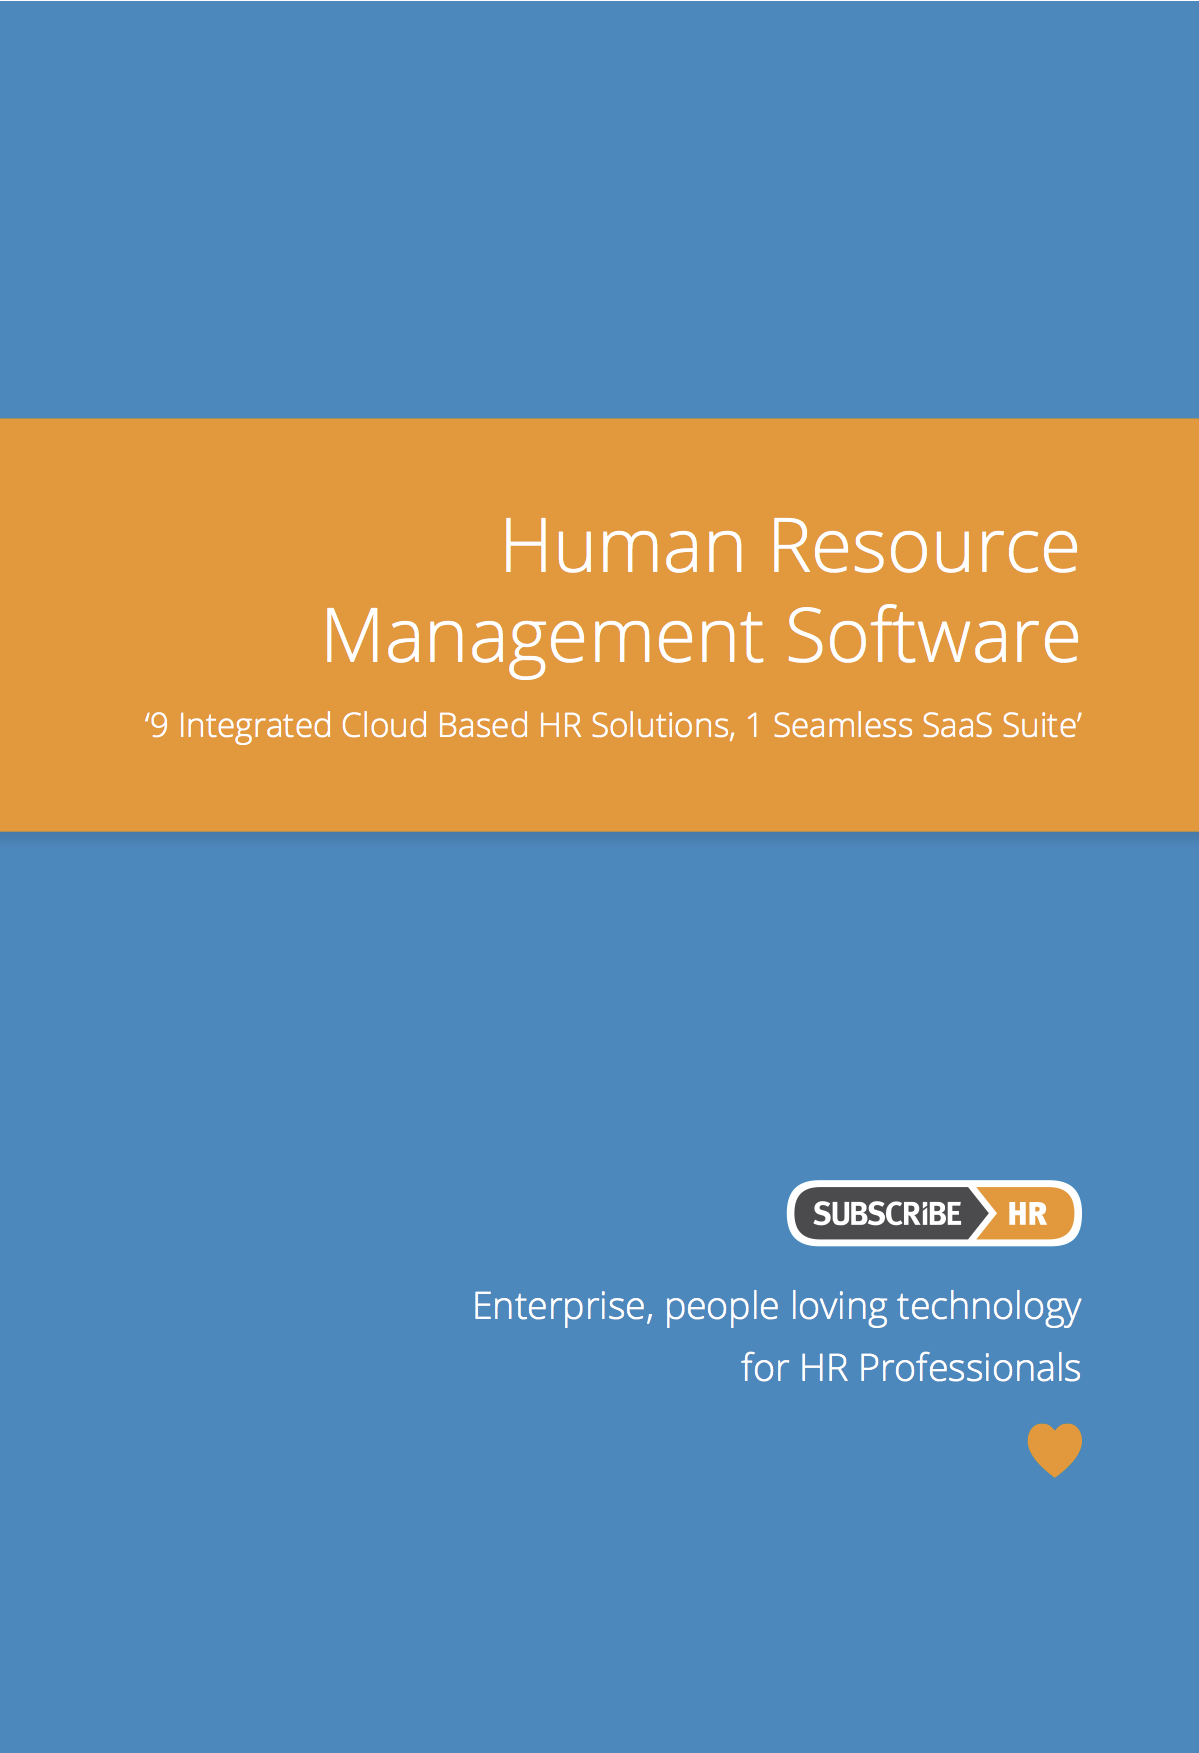 Subscribe-HR Human Resource Management Software Company Overview